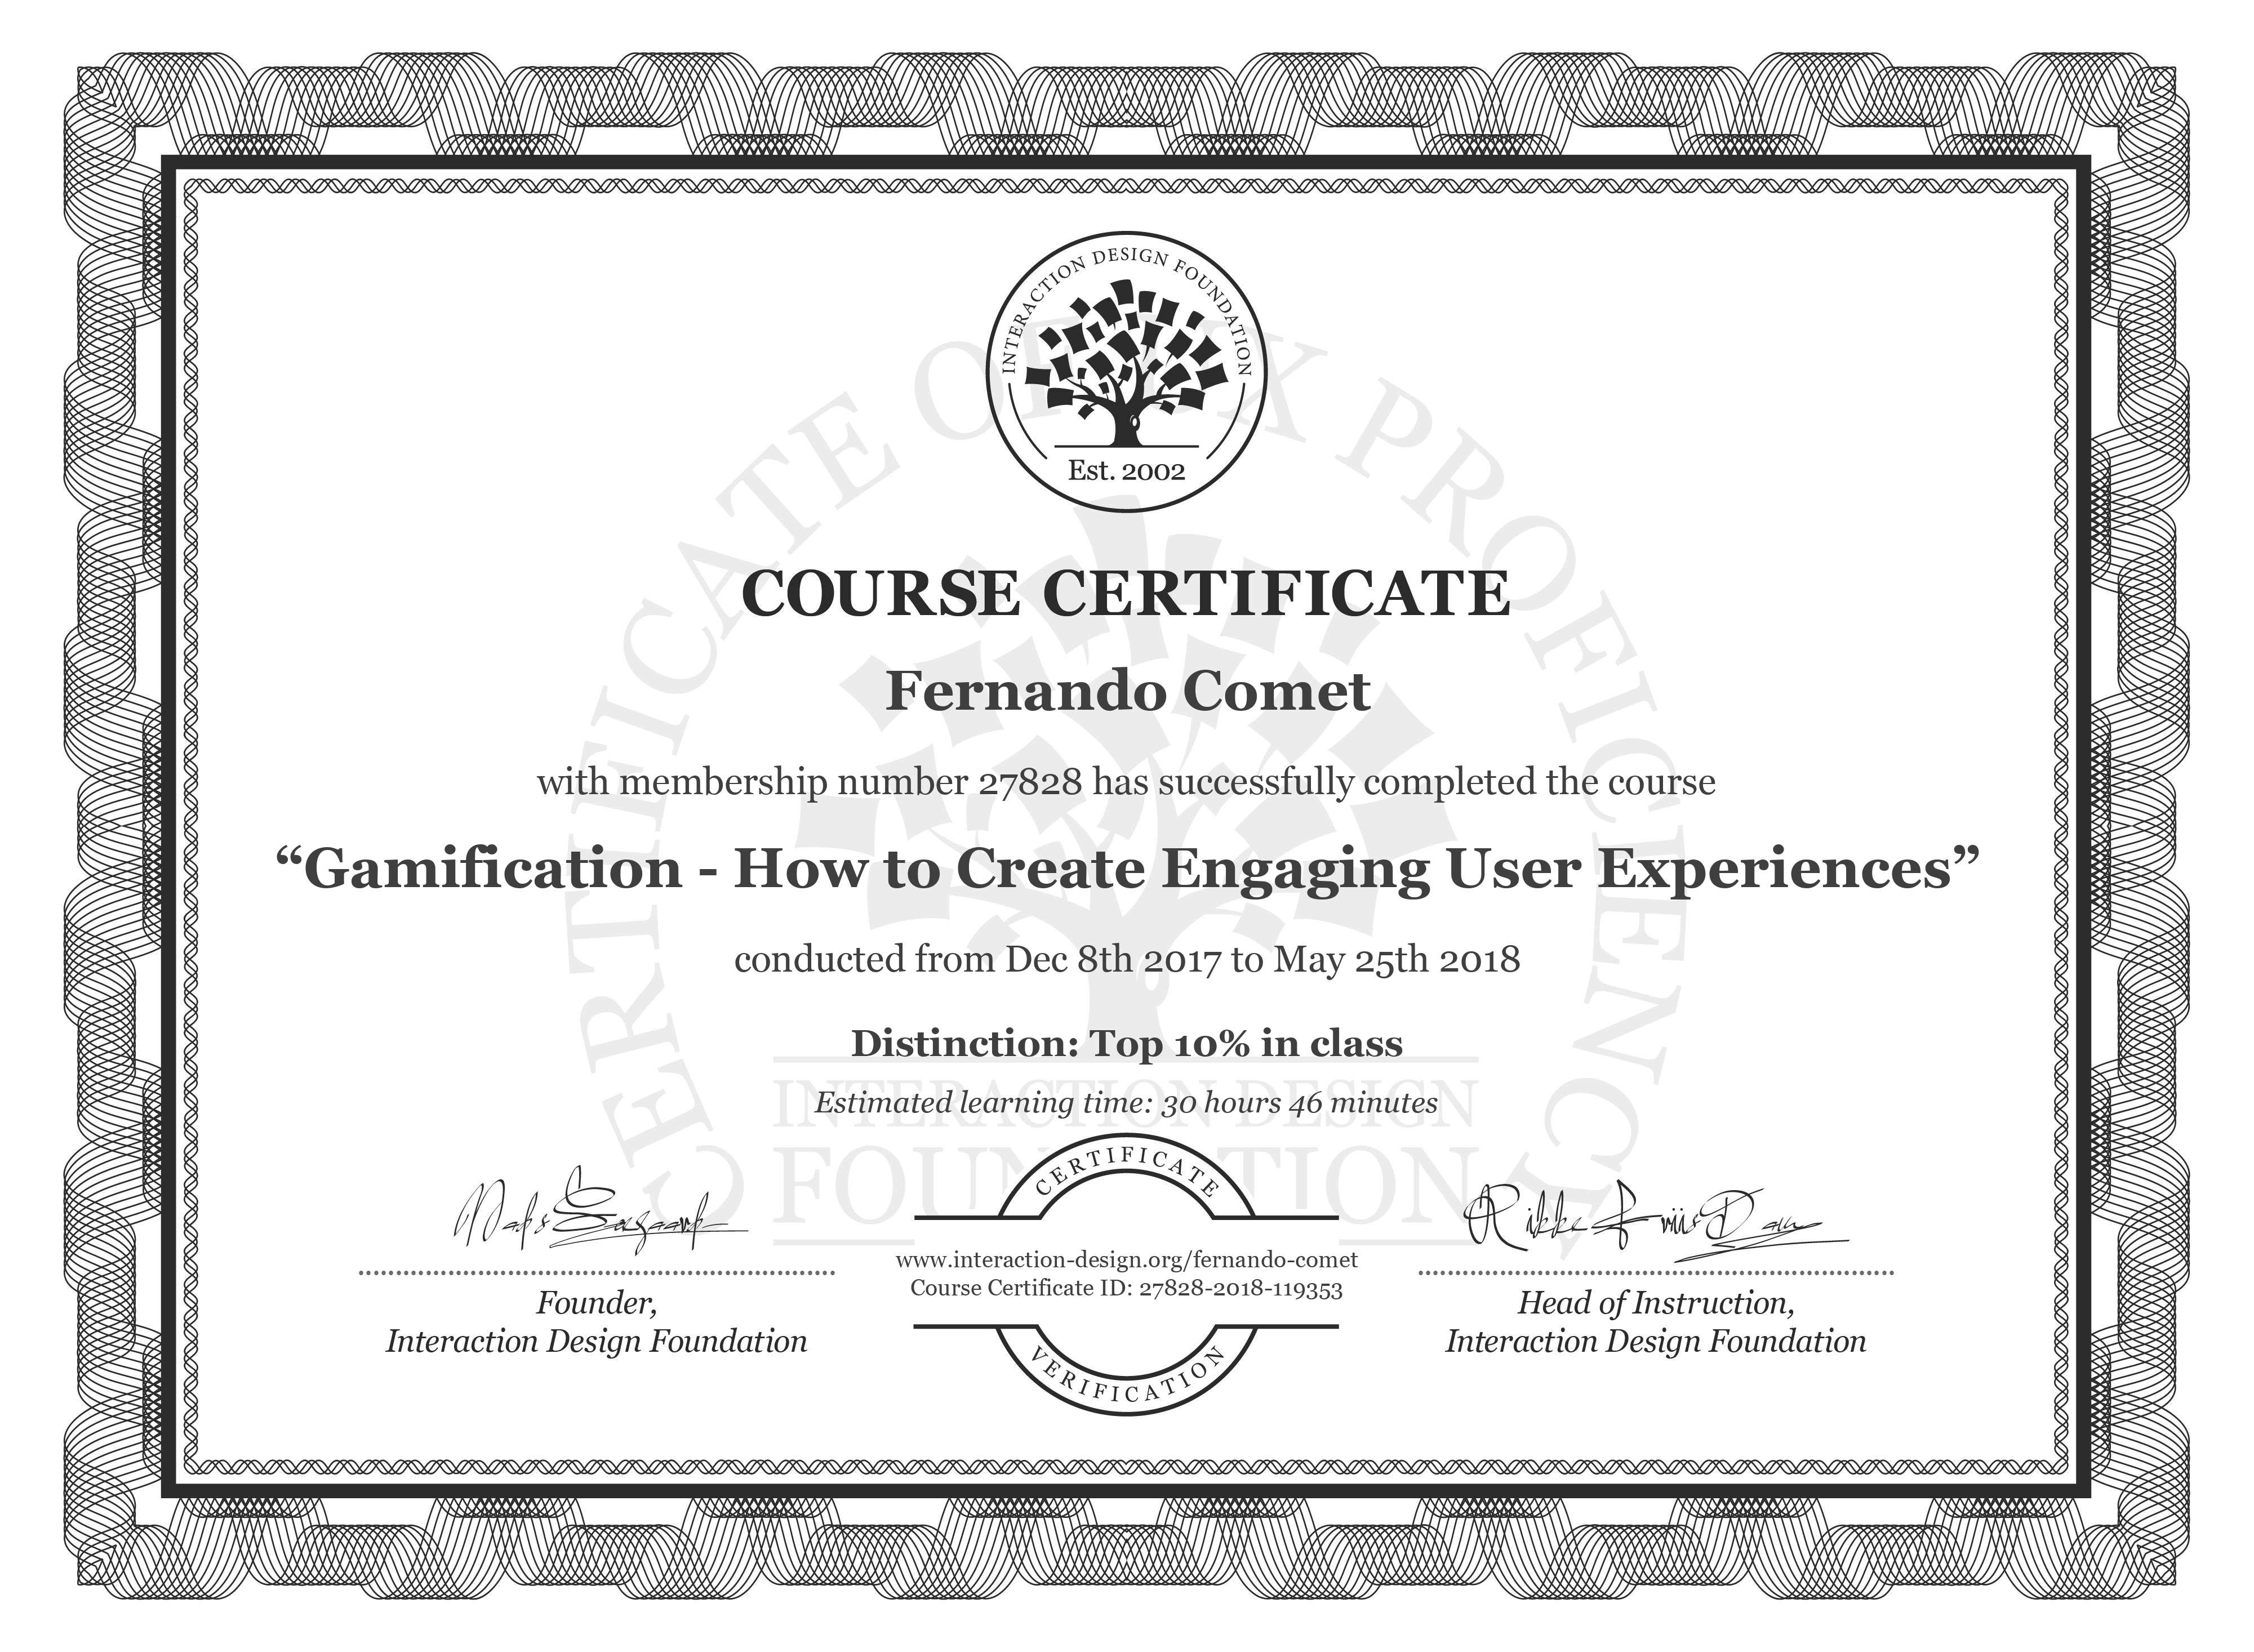 Fernando Comet's Course Certificate: Gamification – Creating Addictive User Experiences